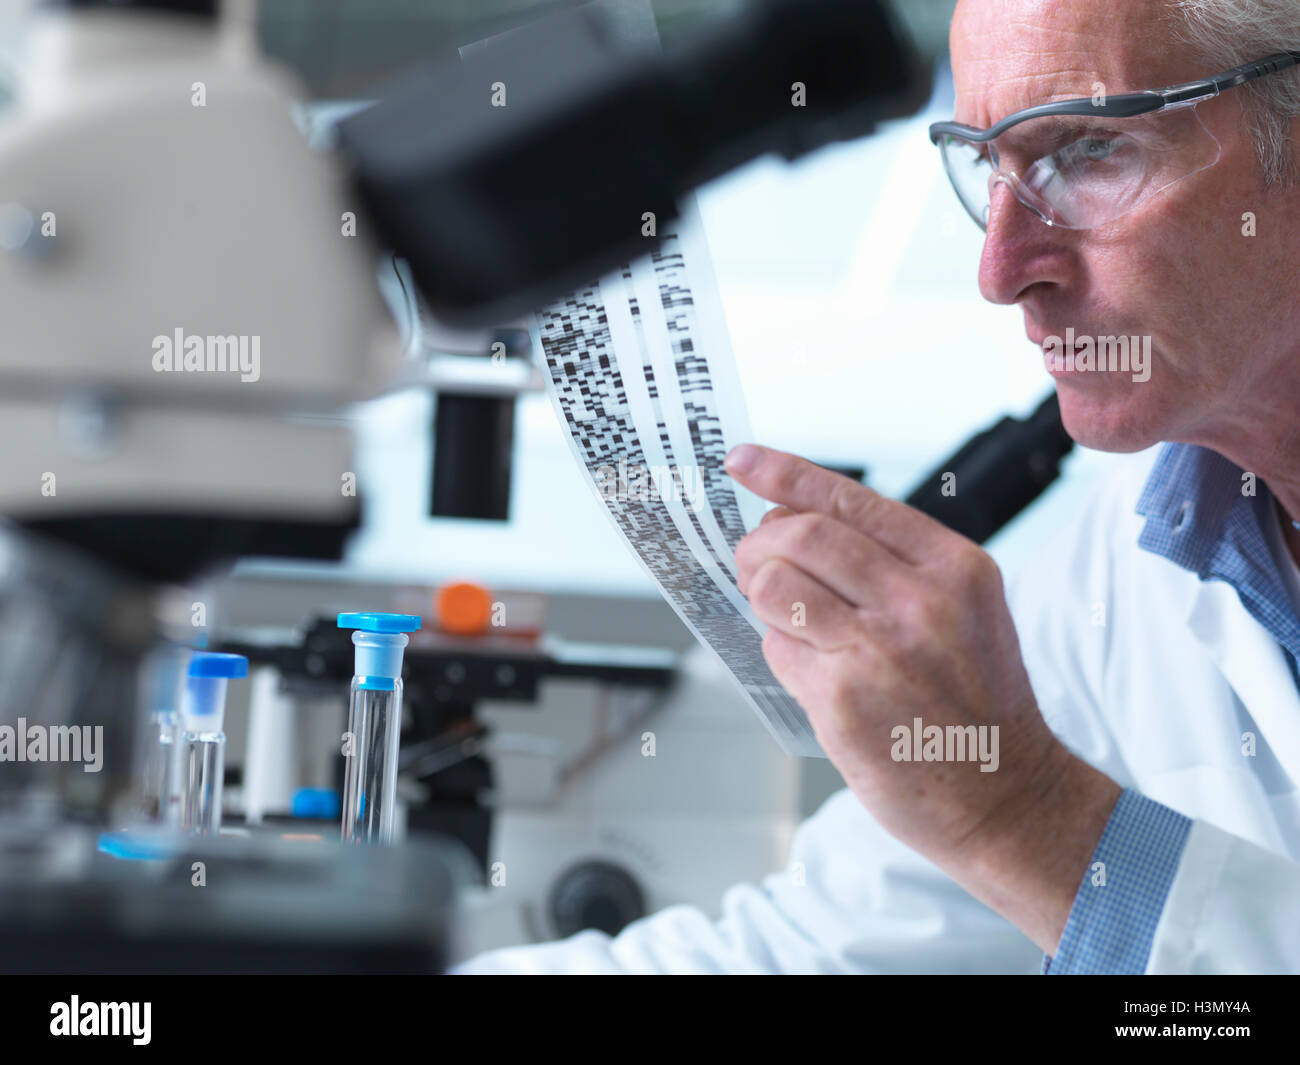 Researcher holding a DNA  gel during a genetic experiment in a laboratory - Stock Image